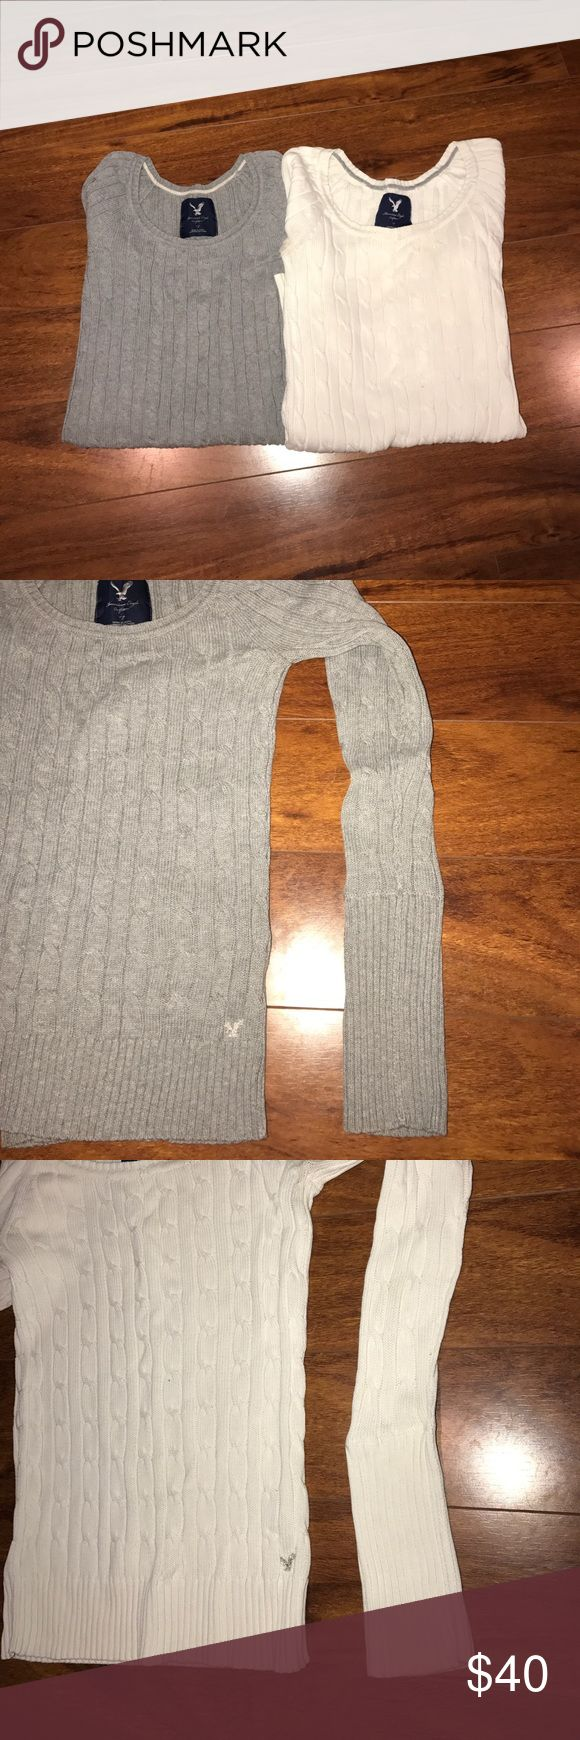 American Eagle Outfitters- Knit Sweater Bundle American Eagle Outfitters- Itm#1 Long Sleeve, Grey Knit sweater w/ silver embroidered logo. Size: s/p used; expected wear and tear.. in very good condition; like new. Itm#2 Off White, Long Sleeve, Knit sweater w/ silver embroidered logo. Size: s/p used; expected wear and tear. In okay condition (needs a few small stitches, please see picture).No returns/exchanges. No trades. No PayPal. Final Sale. Bundle. American Eagle Outfitters Sweaters Crew…